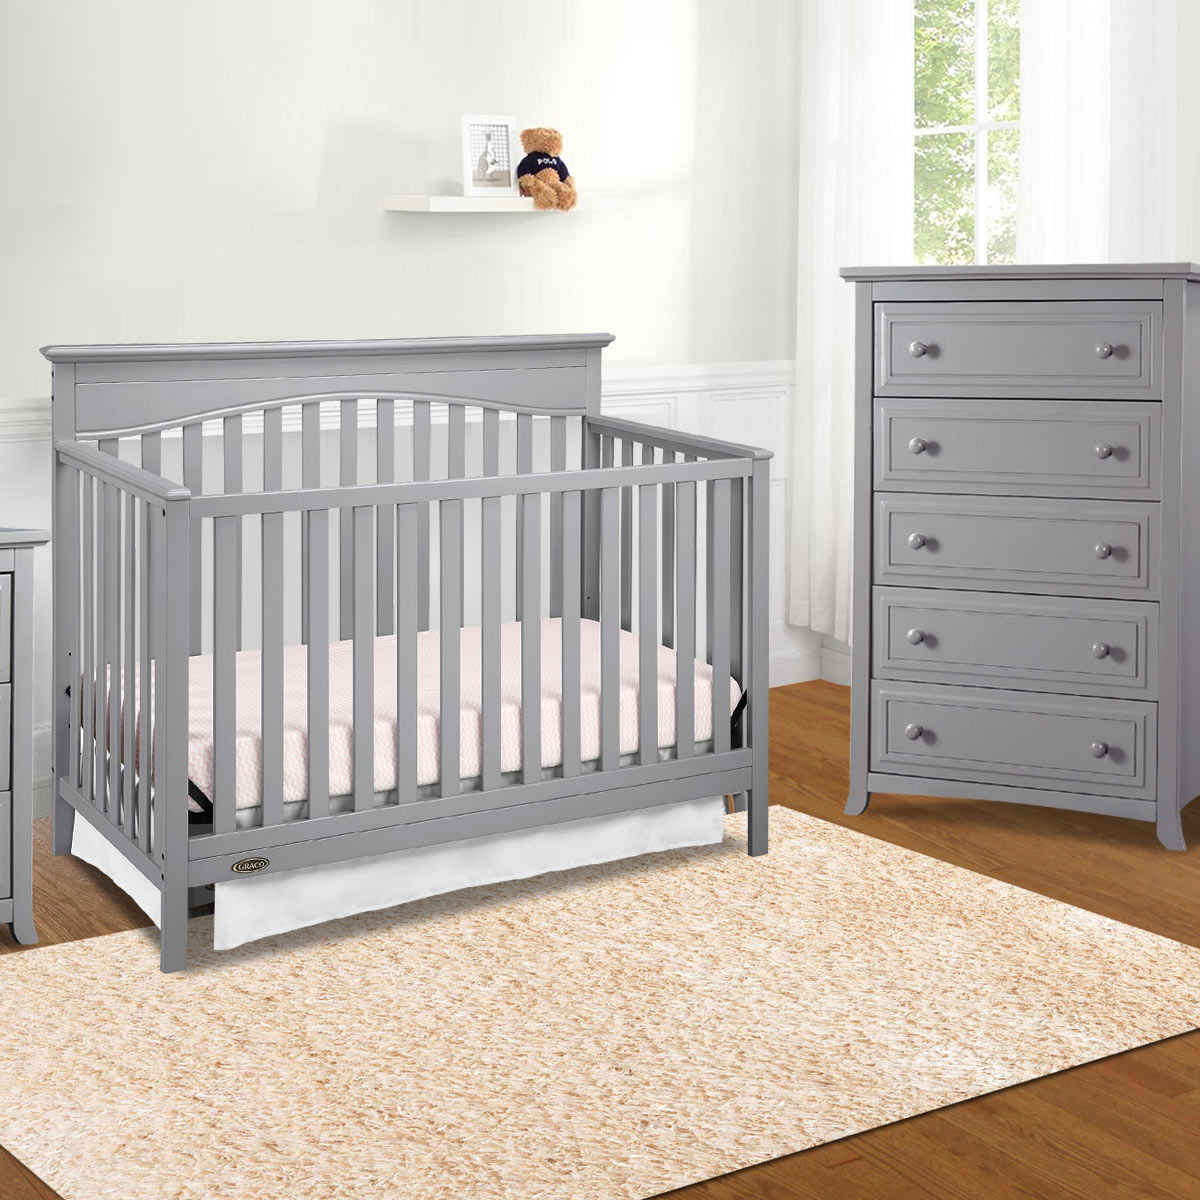 Graco Nursery Furniture Sets Thenurseries